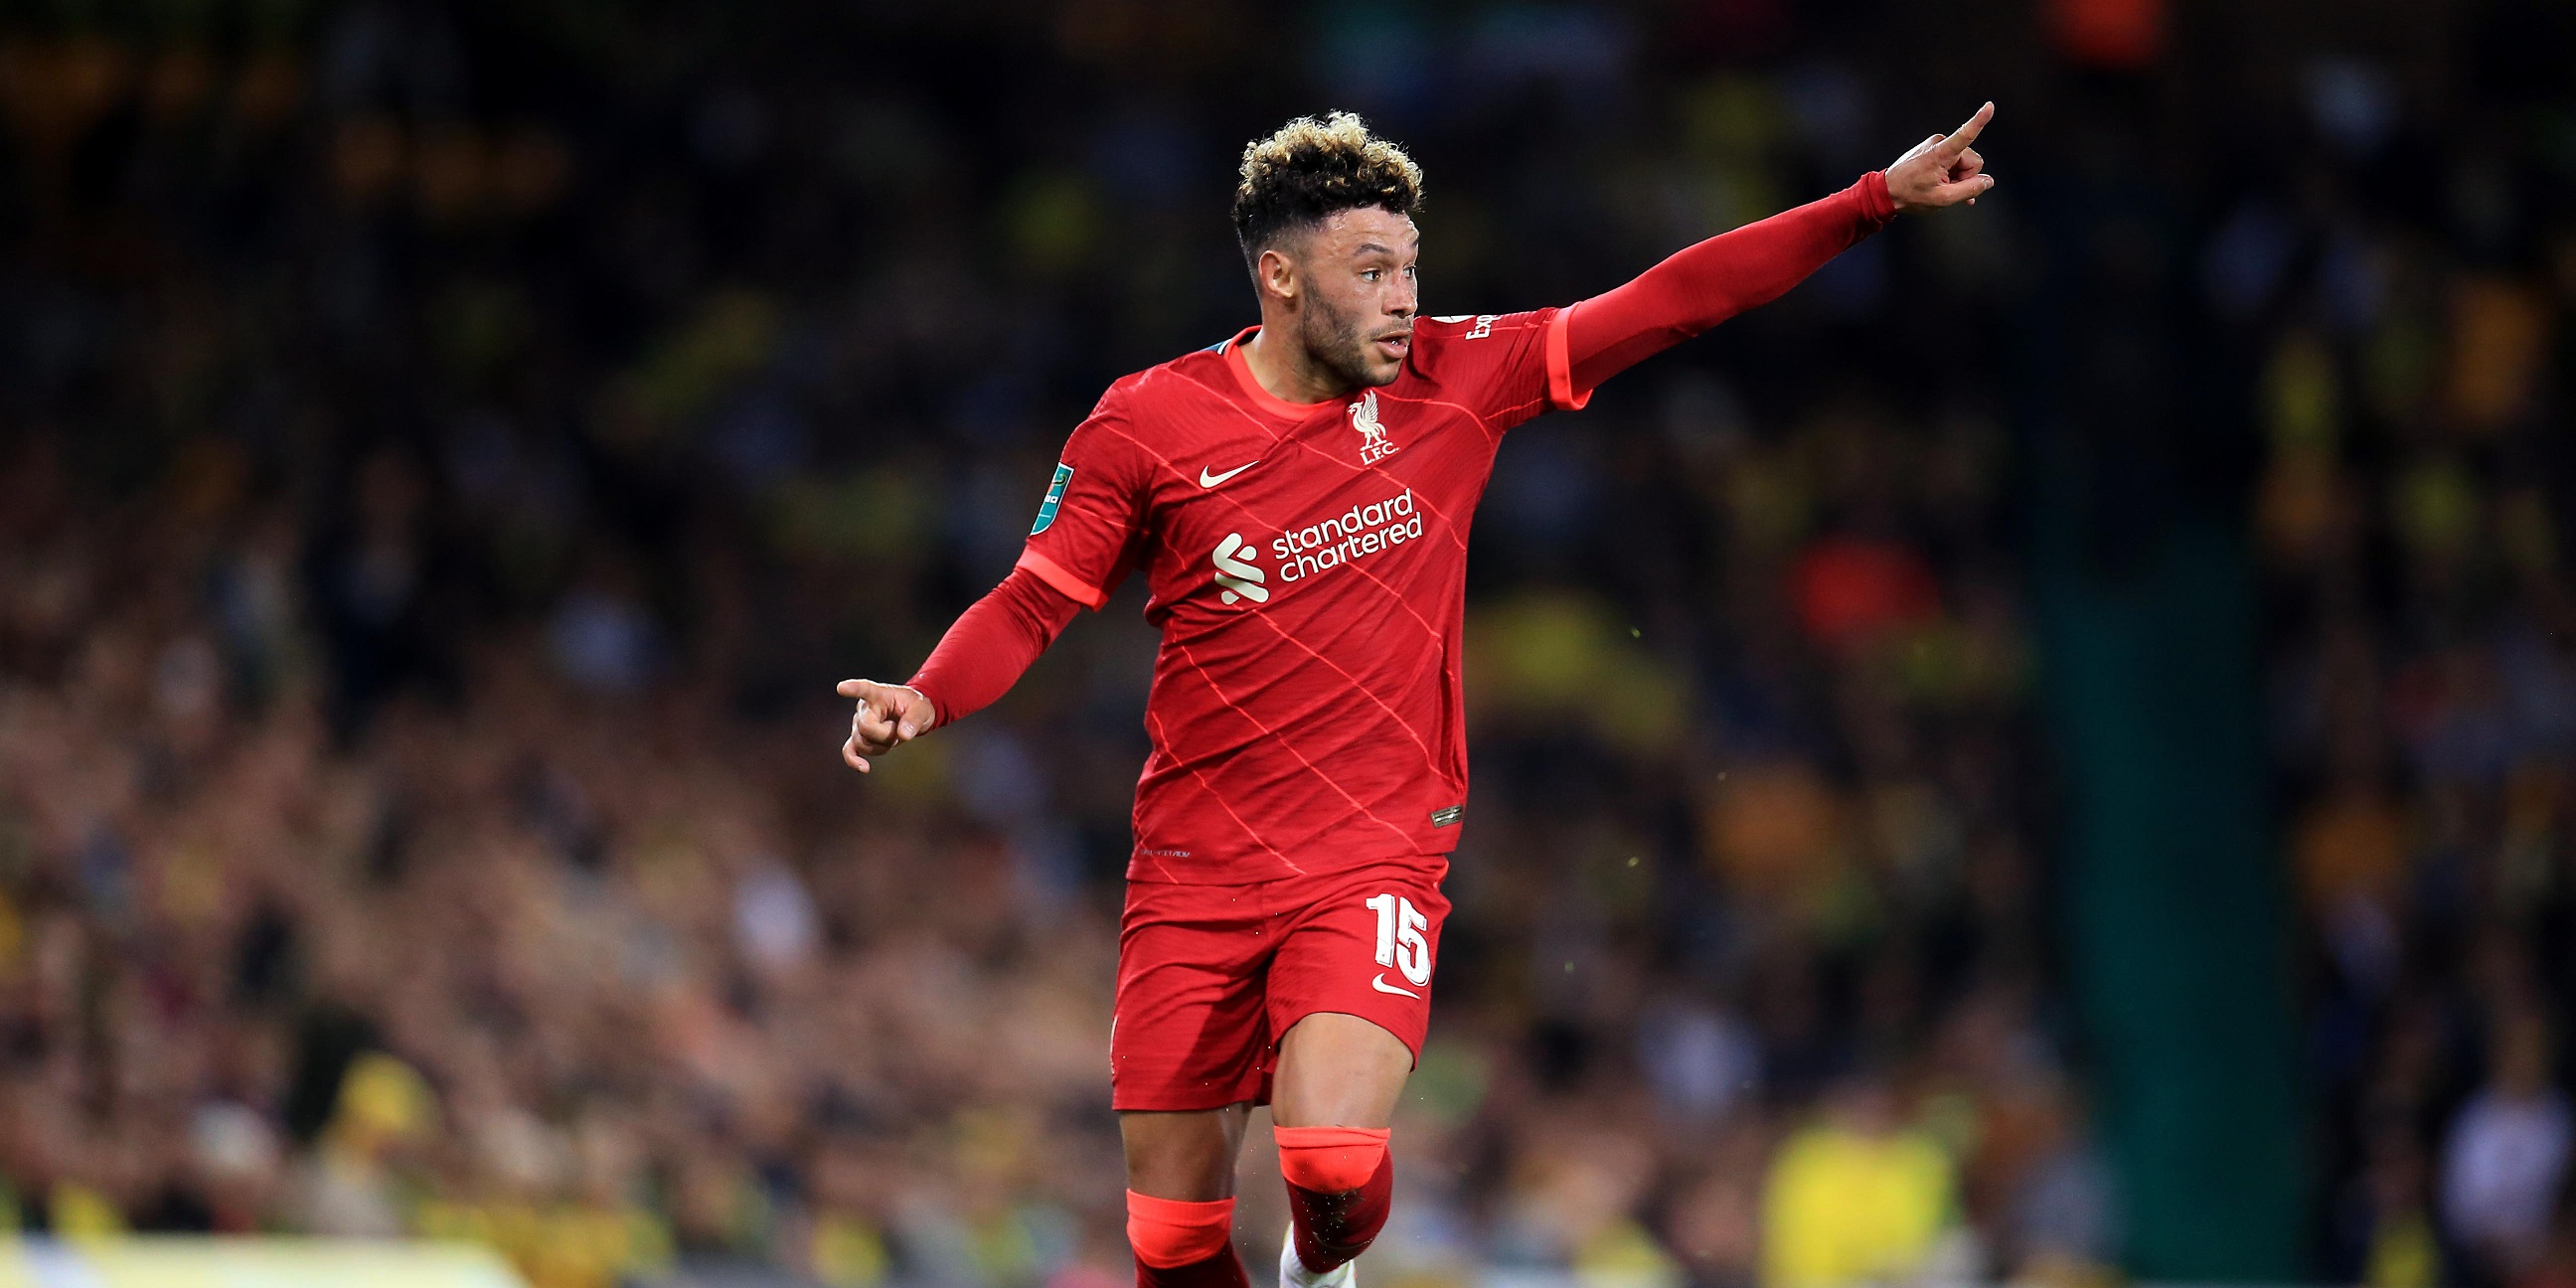 Neil Jones weighs in on 28-year-old Liverpool star's exit rumours: 'Something needs to move'